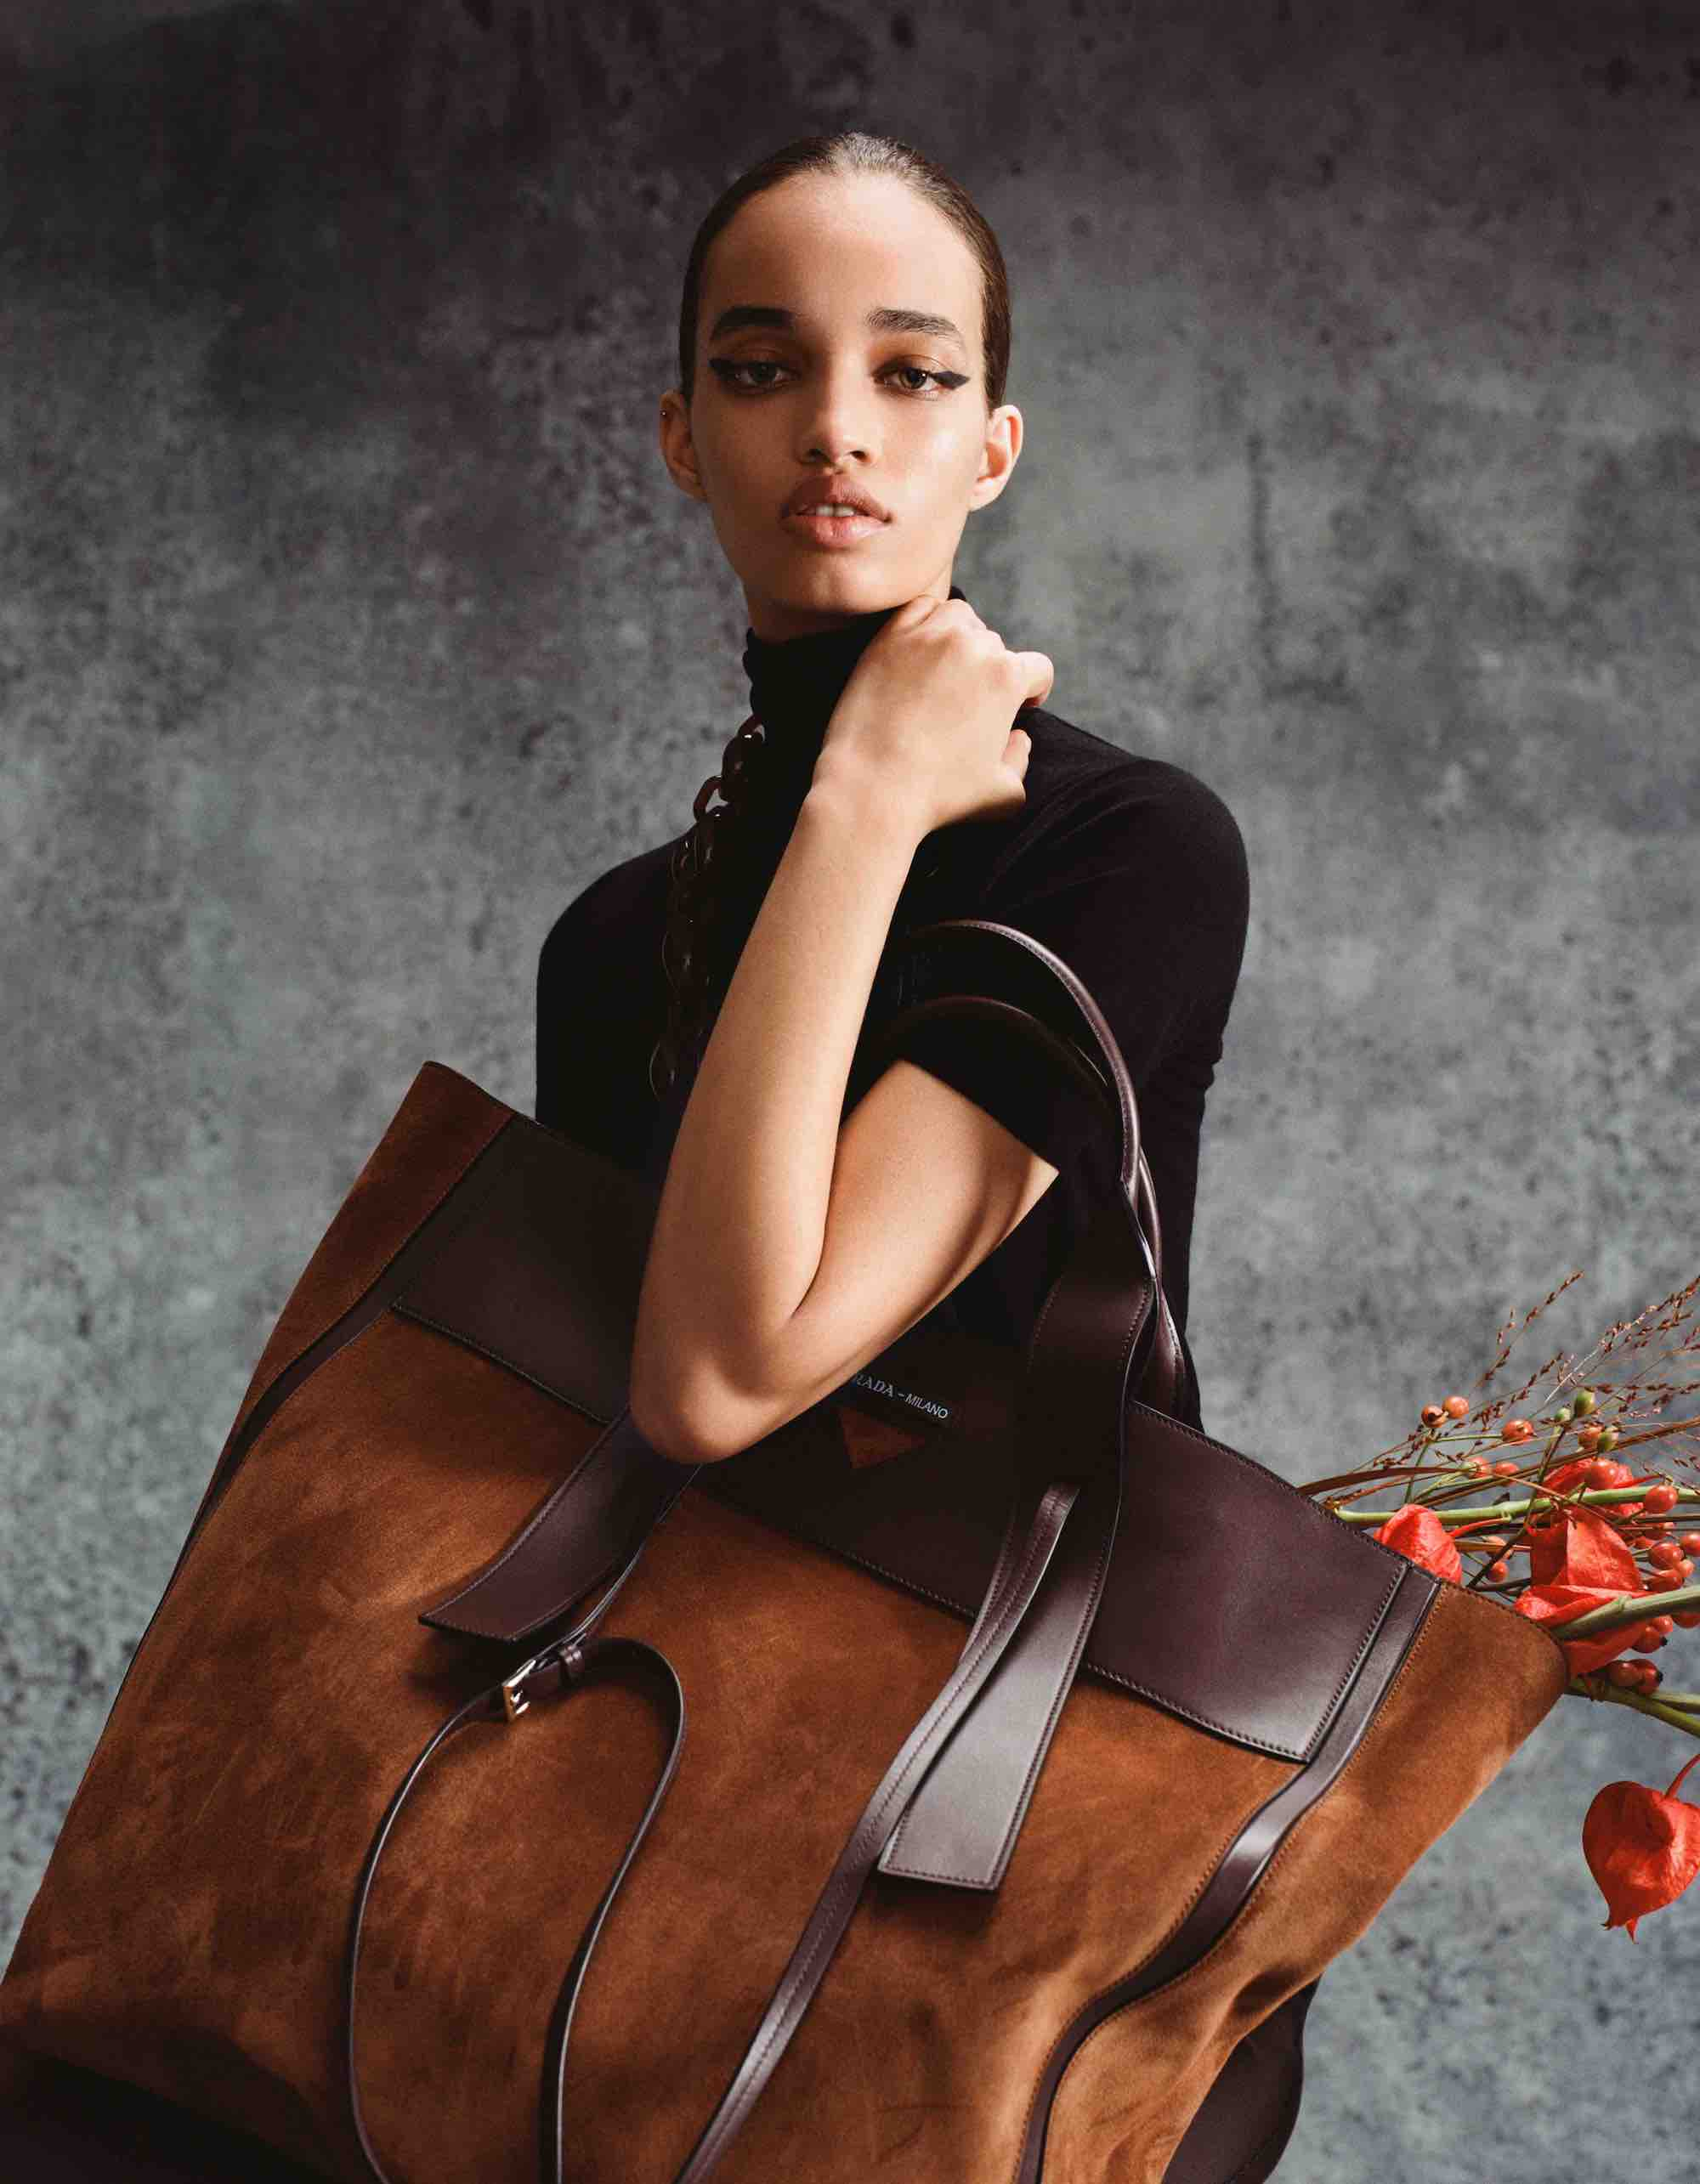 Prada AW18 fashion editorial from magazine tote bag